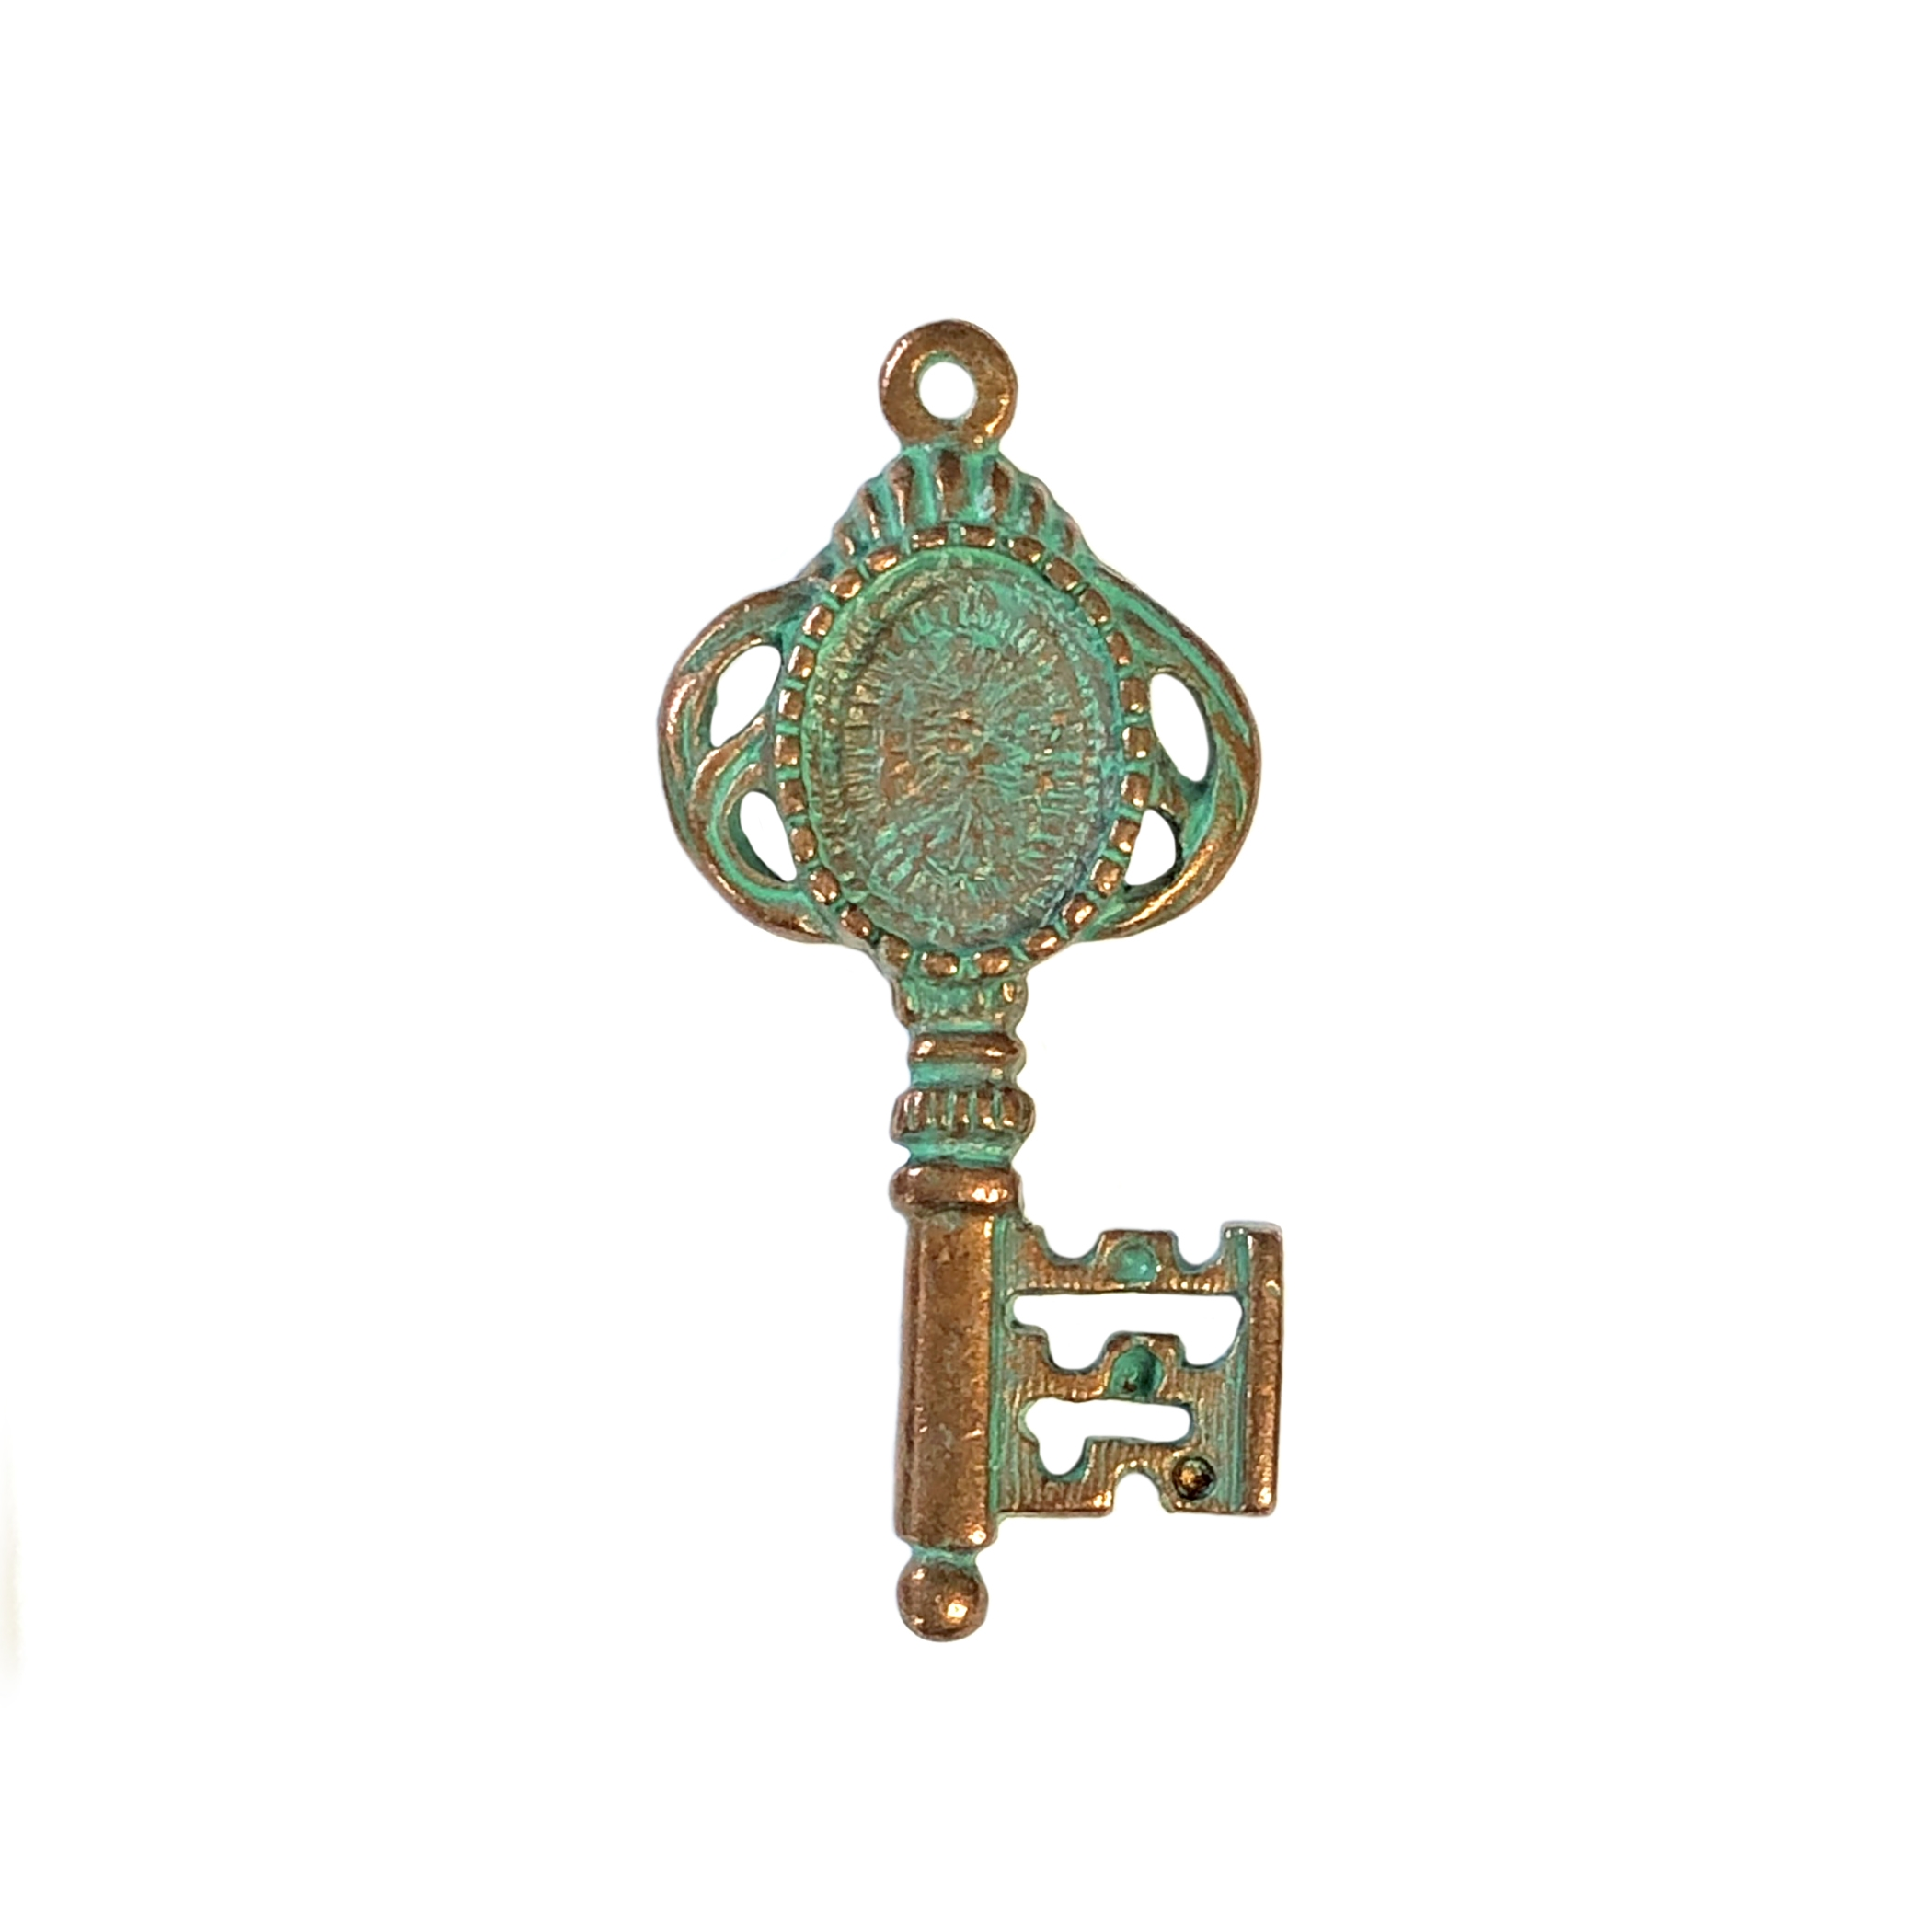 weathered copper pewter key, lead free pewter, 0300, key pendant, lead free pewter jewelry findings, vintage jewelry parts, nickel free finish, B'sue by 1928, vintage jewelry findings, pewter jewelry parts, US made, 1928 Jewelry, pewter key